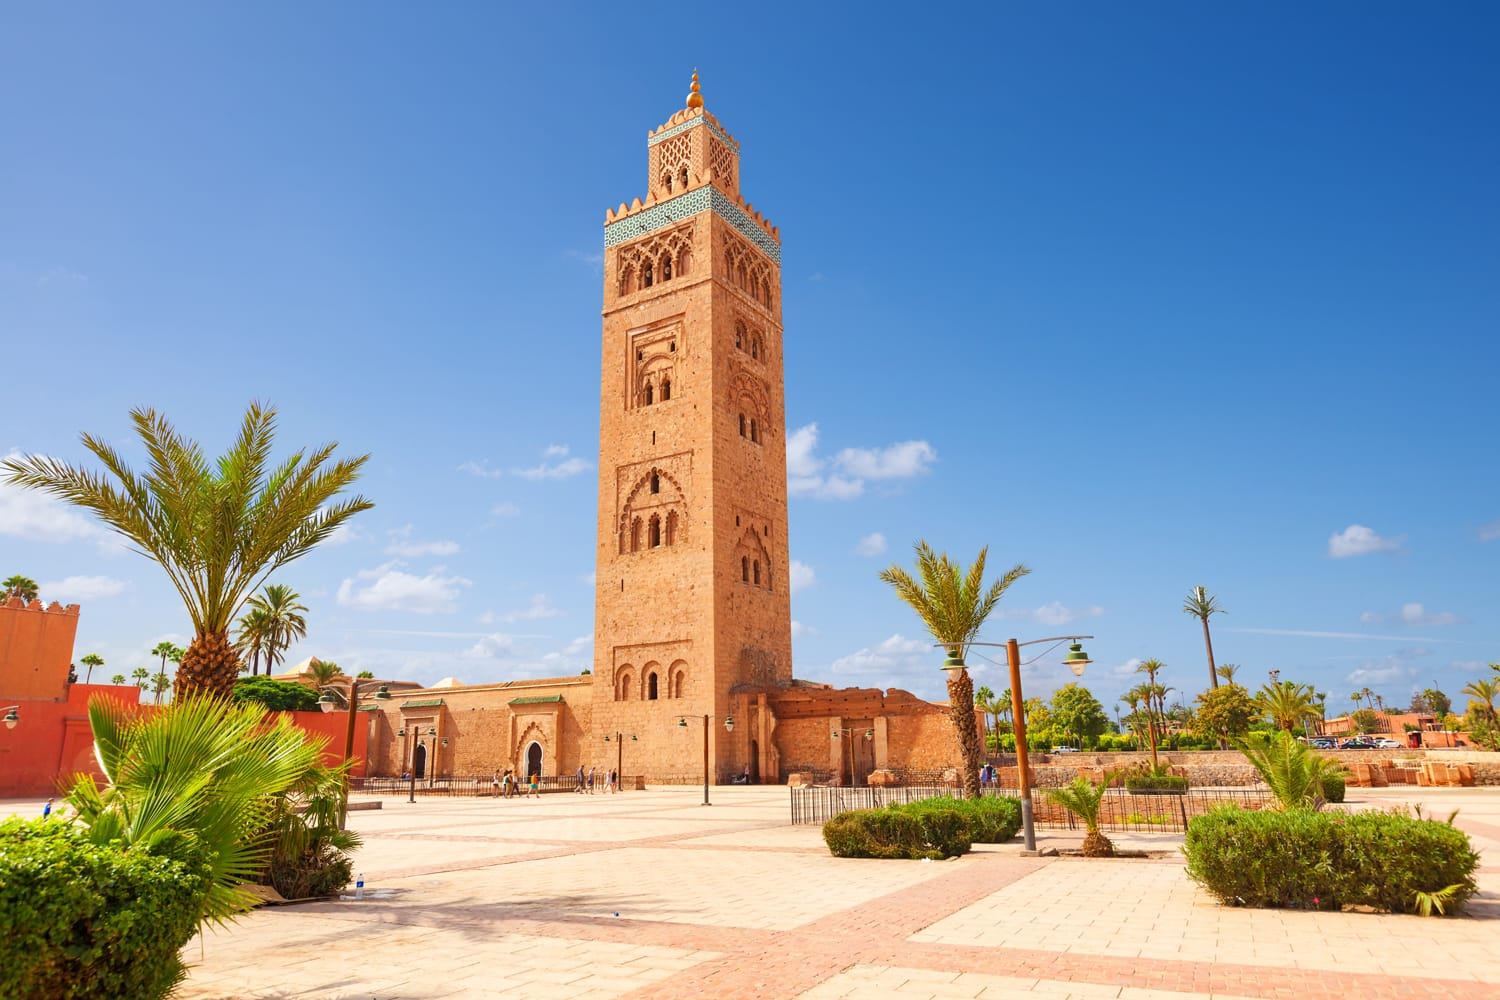 Koutubia mosque in Marakech. One of most popular landmarks of Morocco